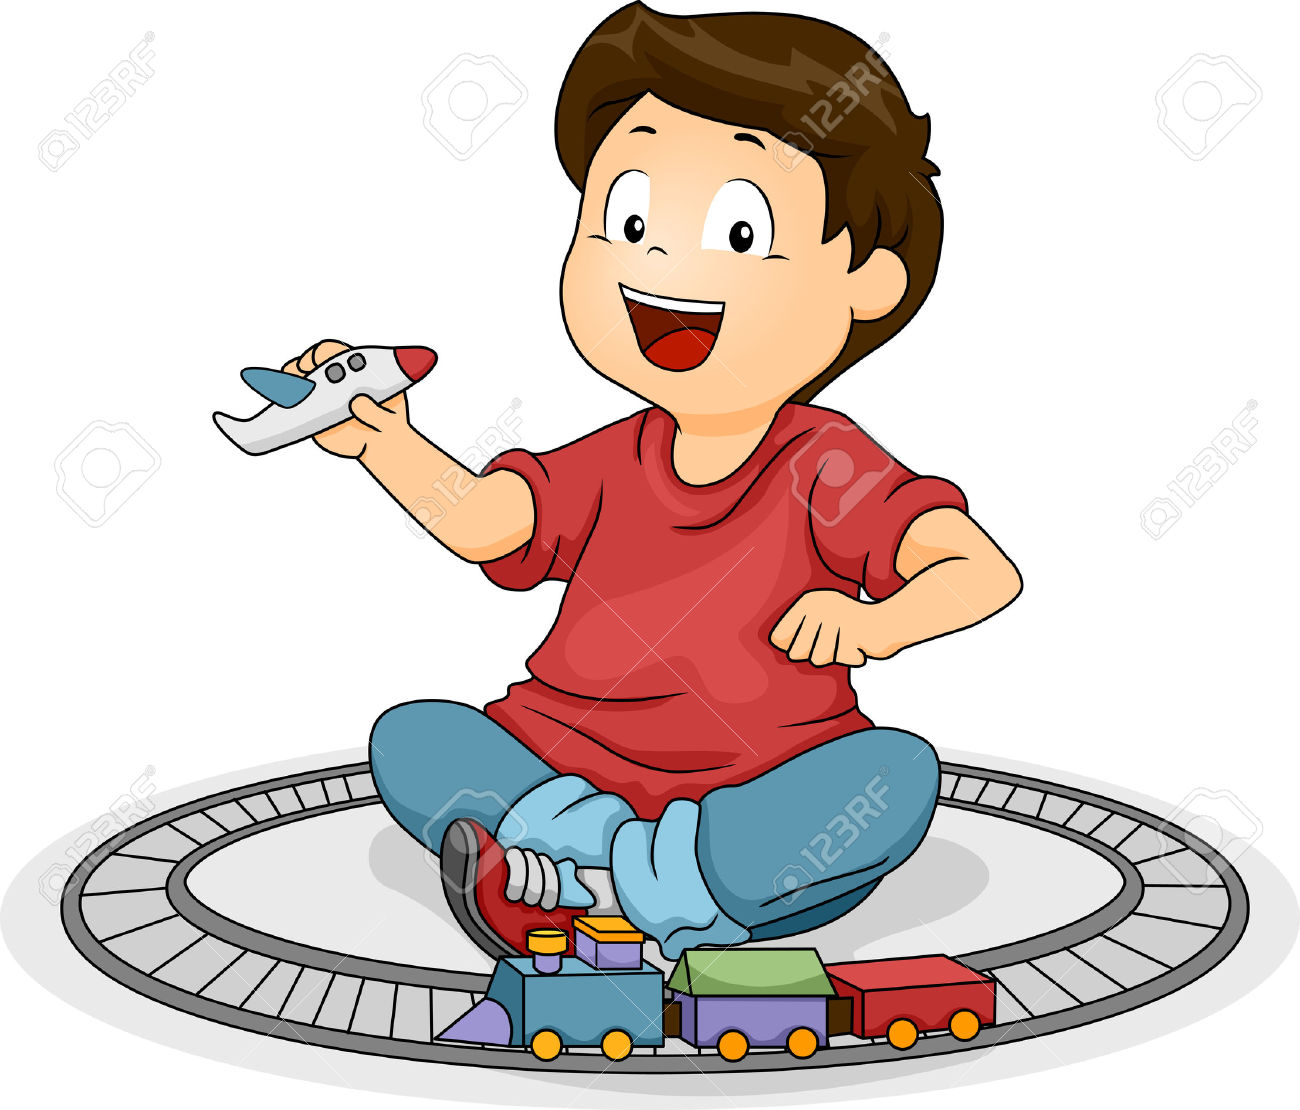 children playing toys clipart - photo #16